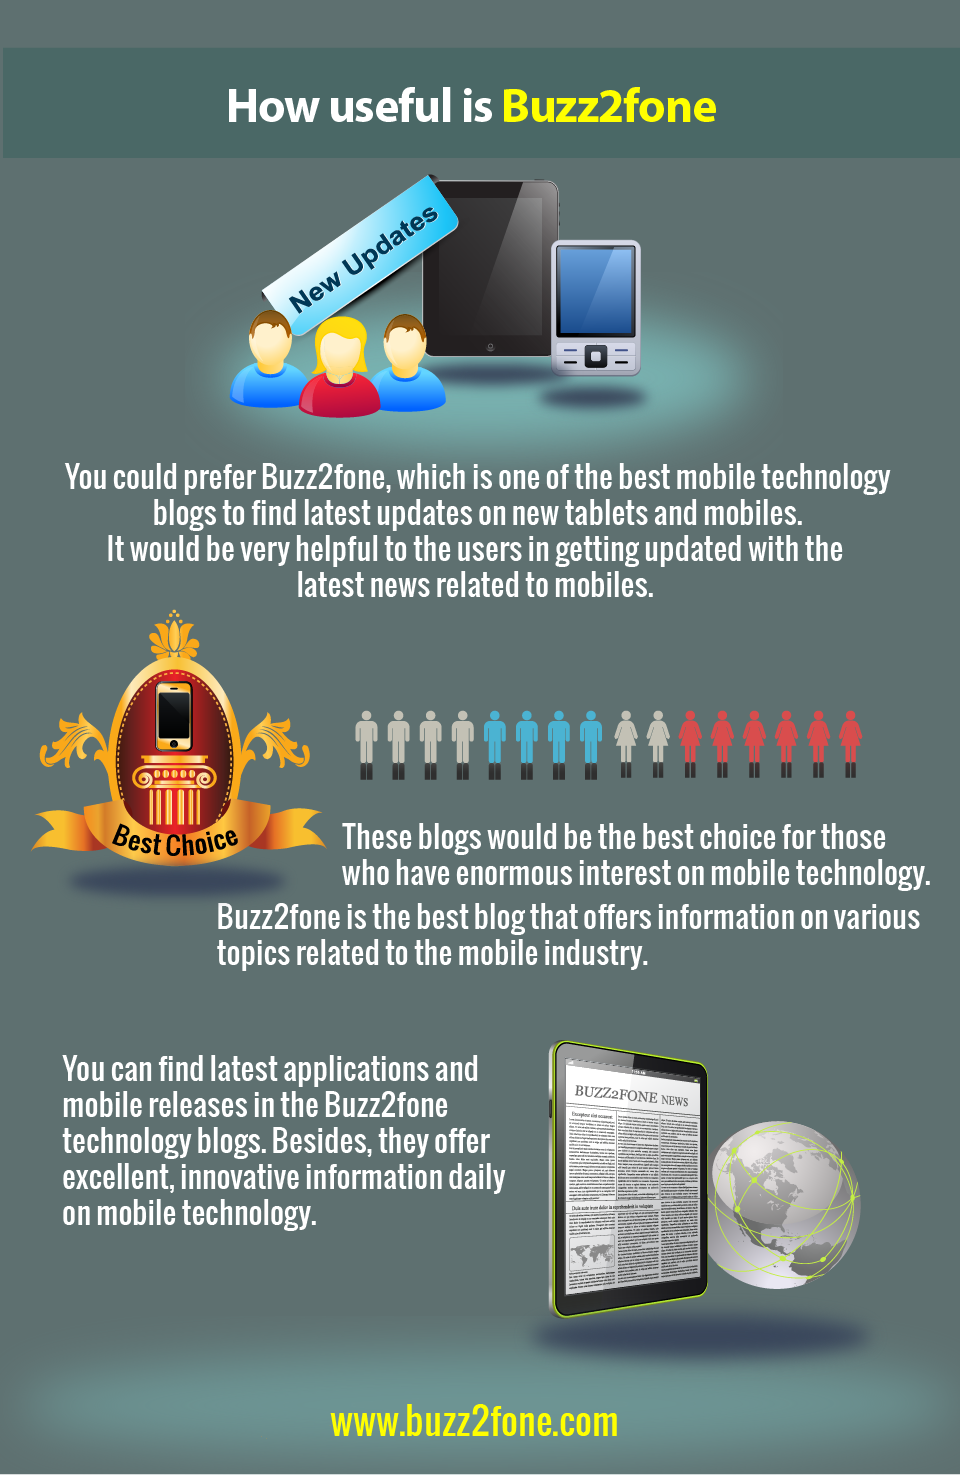 Mobile Technology Images Mobile Technology Blogs to